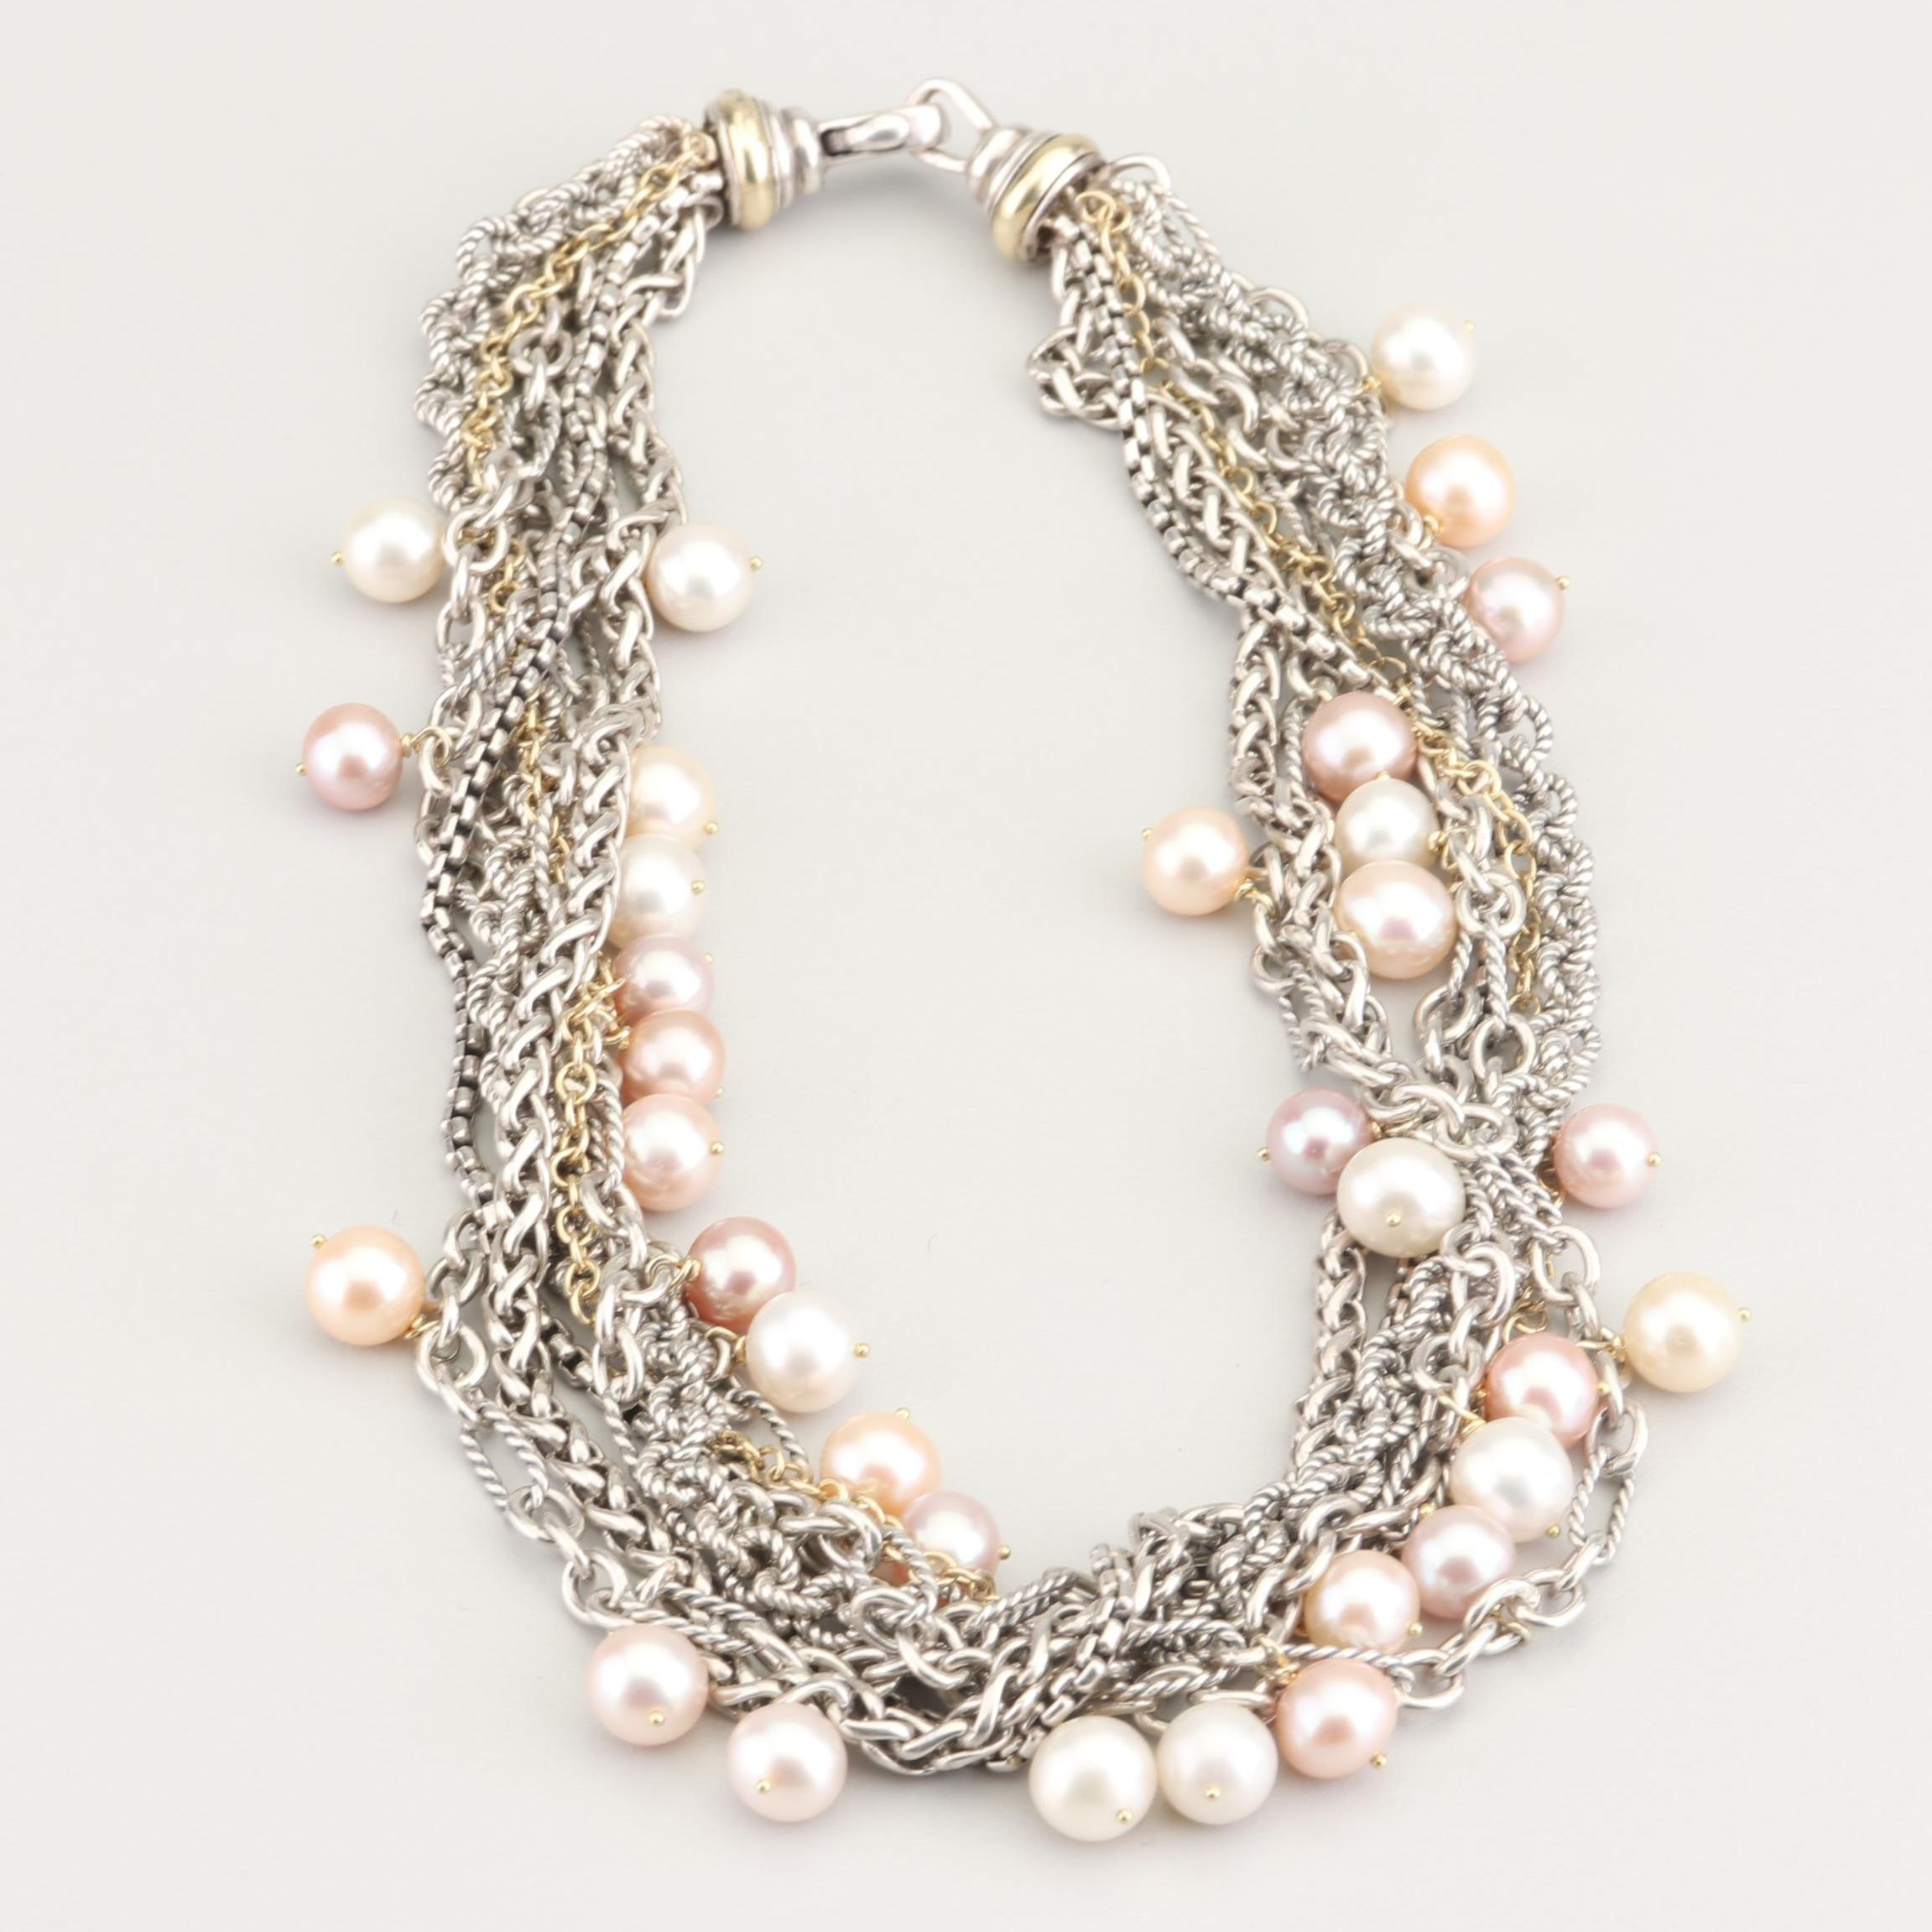 David Yurman Sterling Silver 18K Gold Freshwater Cultured Pearl Necklace